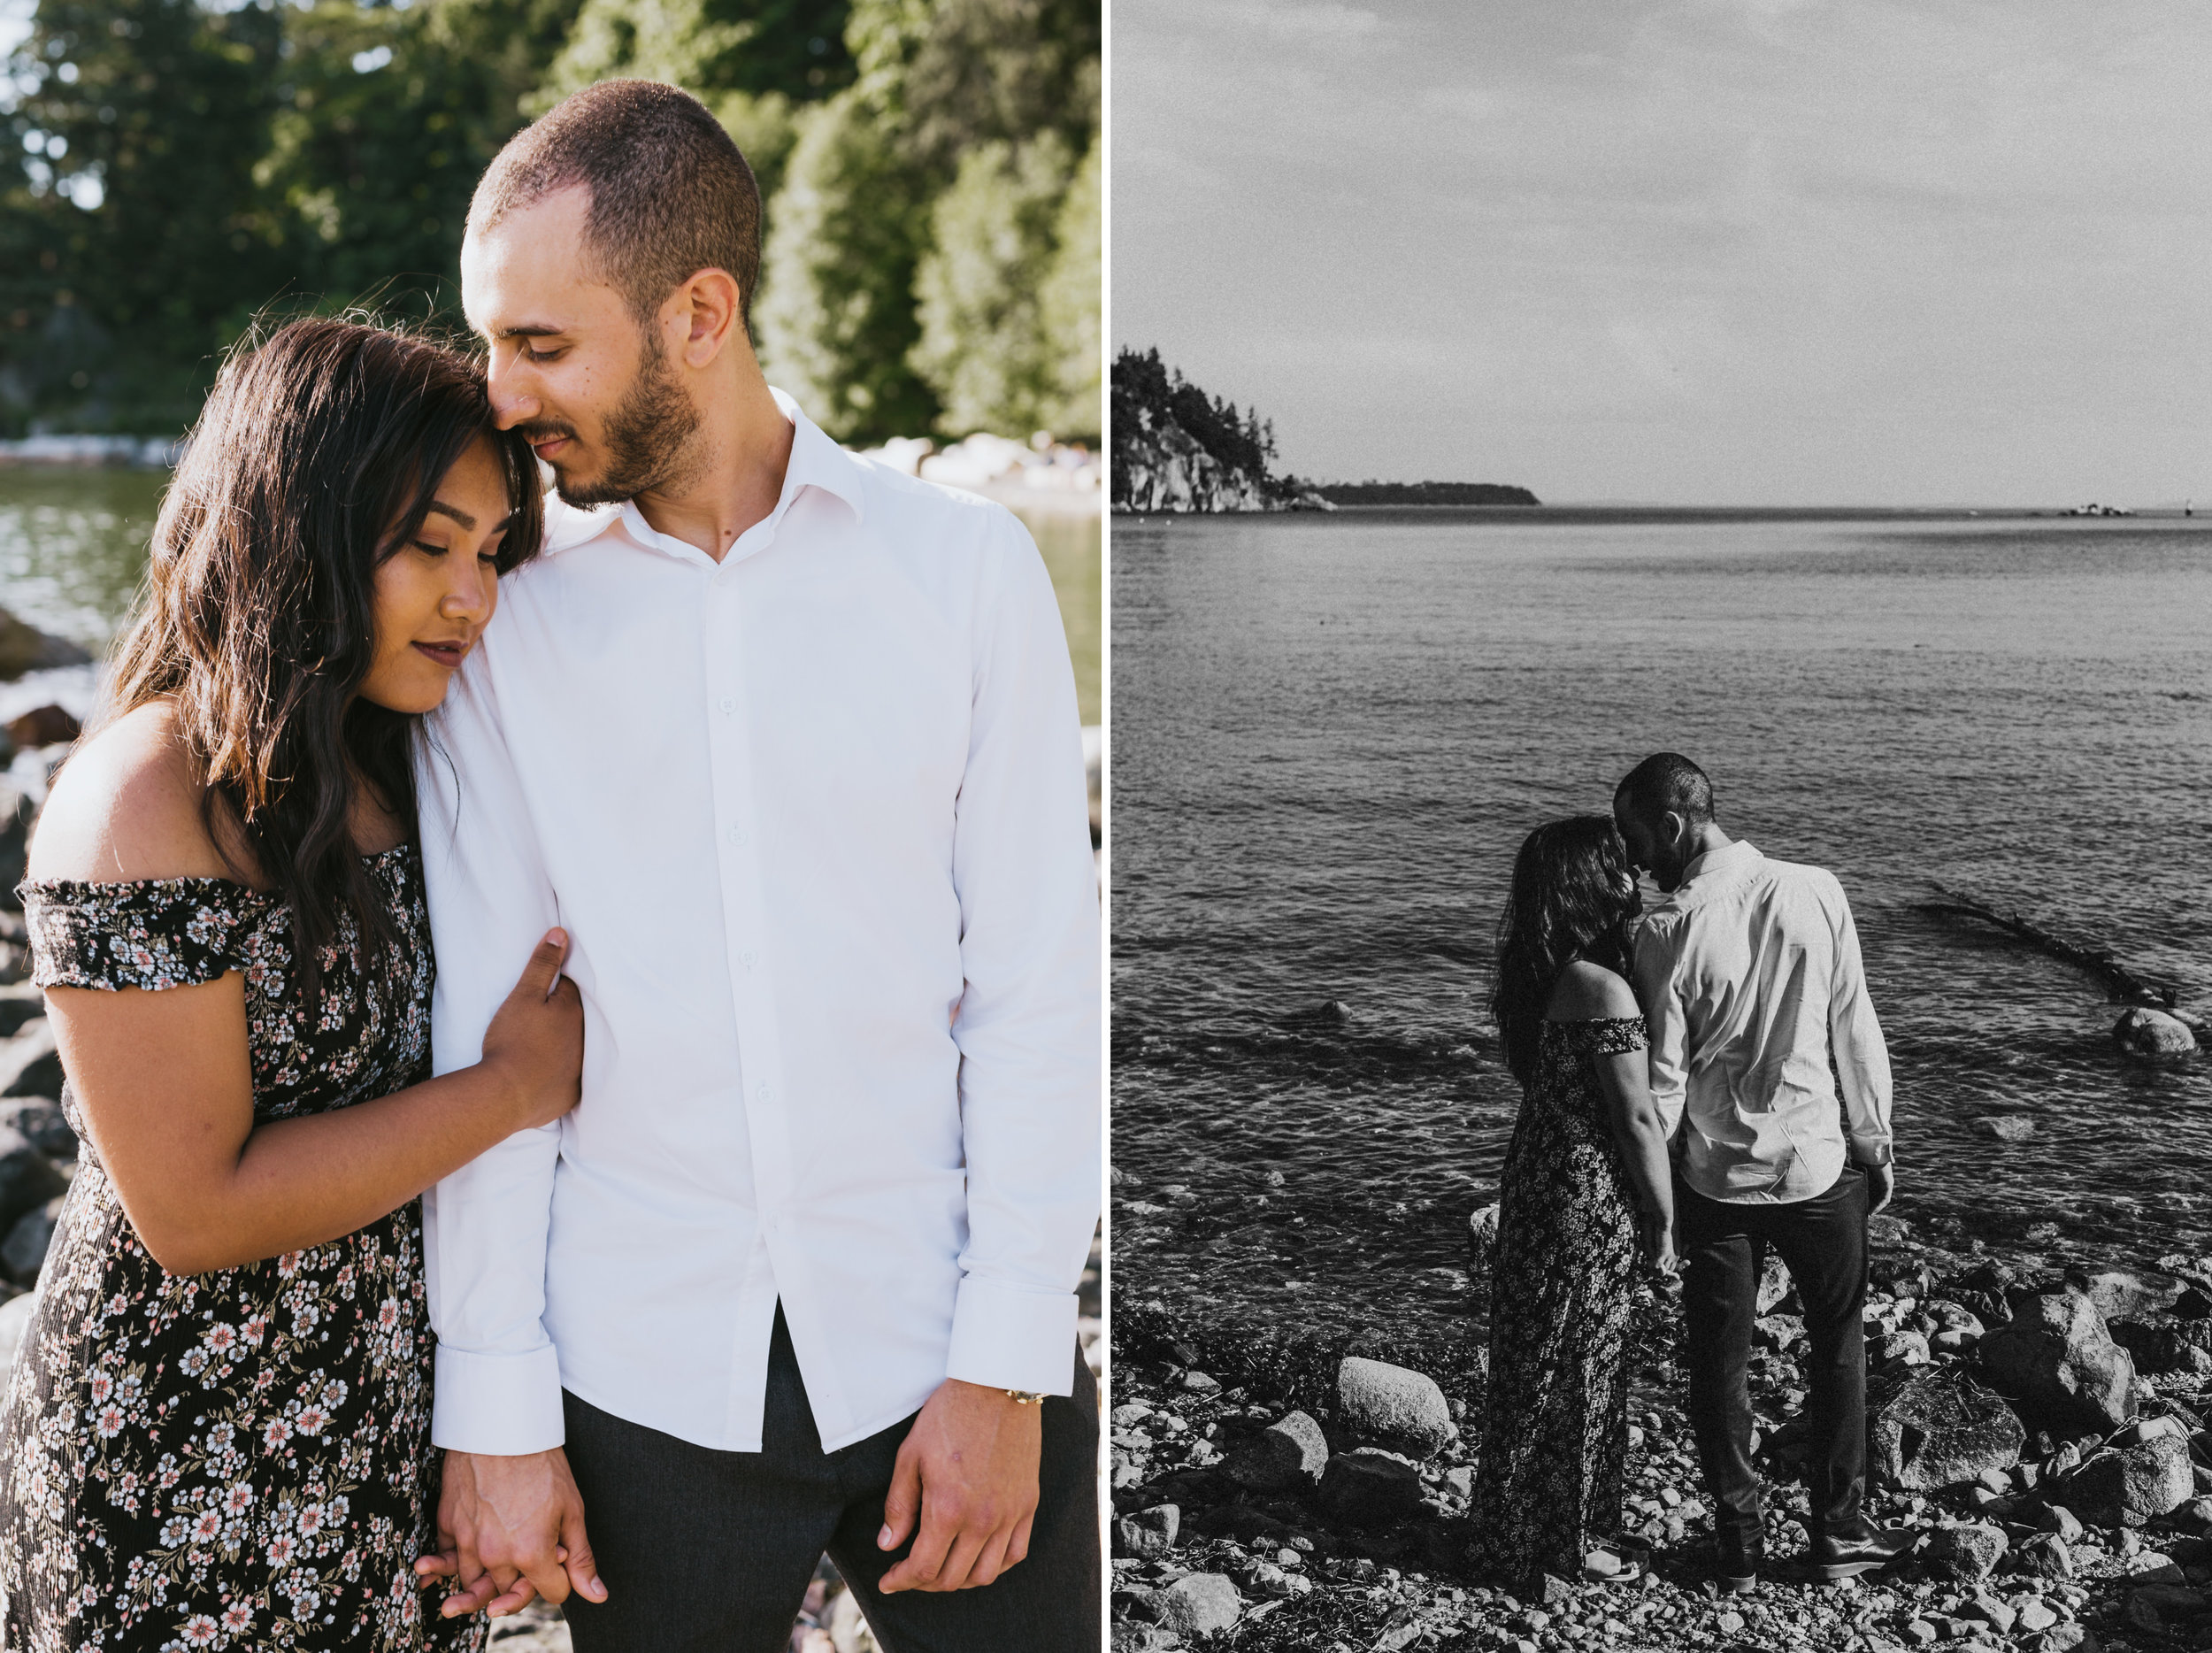 oliver-rabanes-vancouver-surrey-whytecliff-park-proposal-engagement-photography-08.jpg